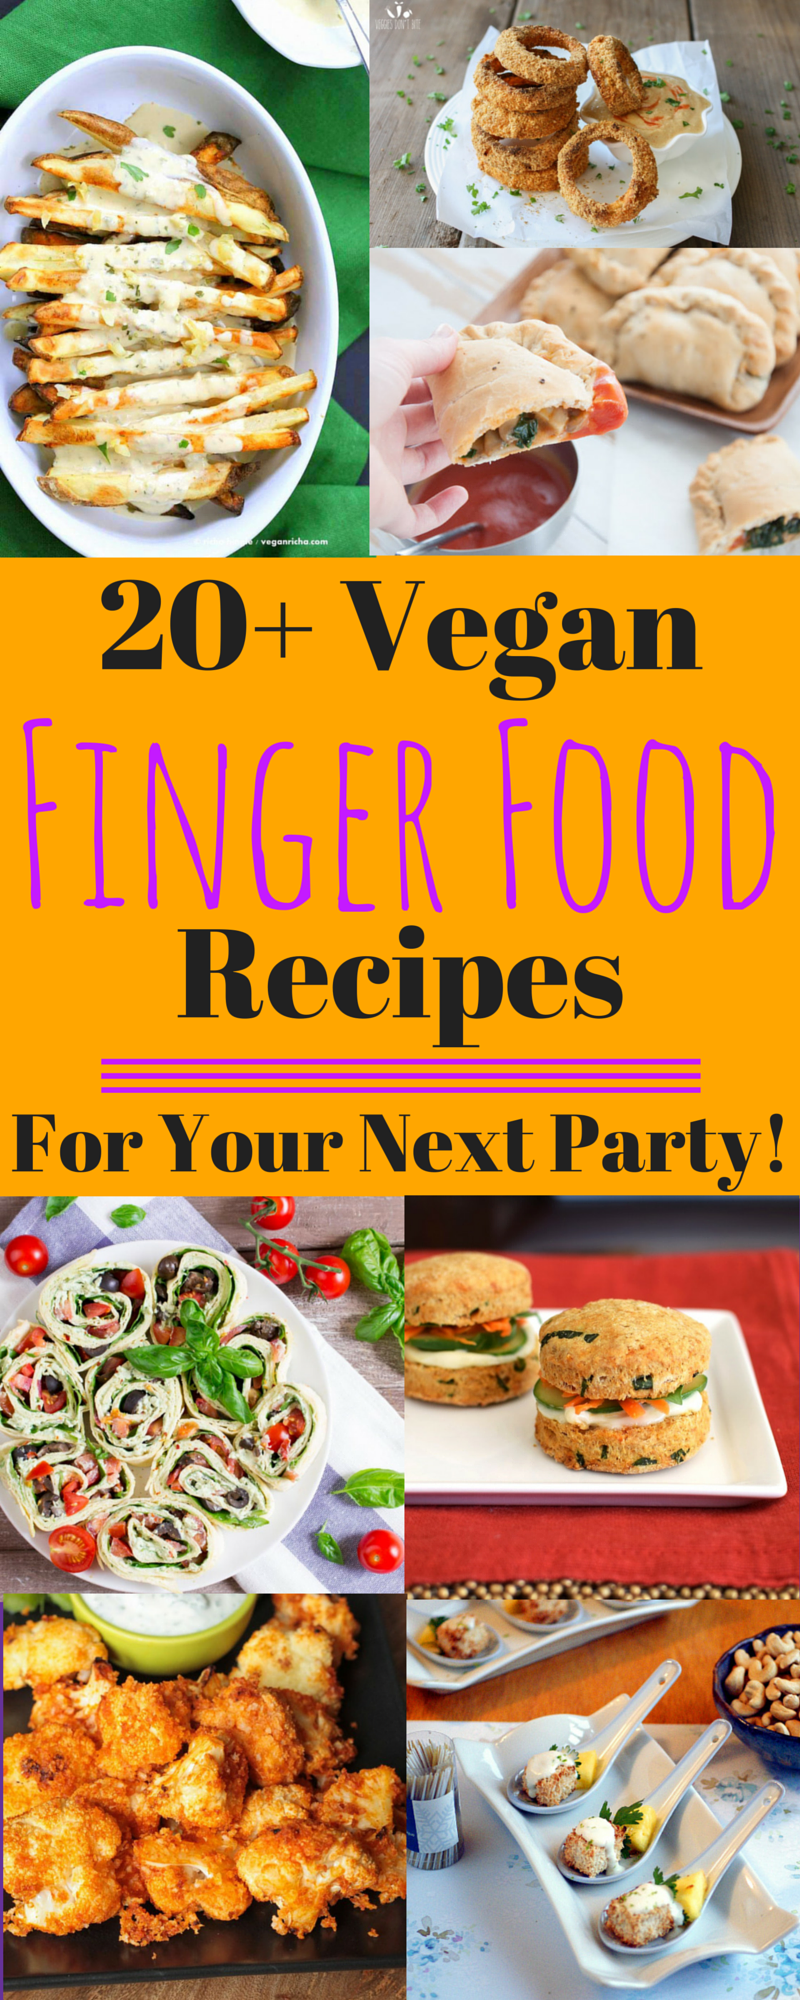 Vegan Finger Food Recipes for your next party! Appetizer